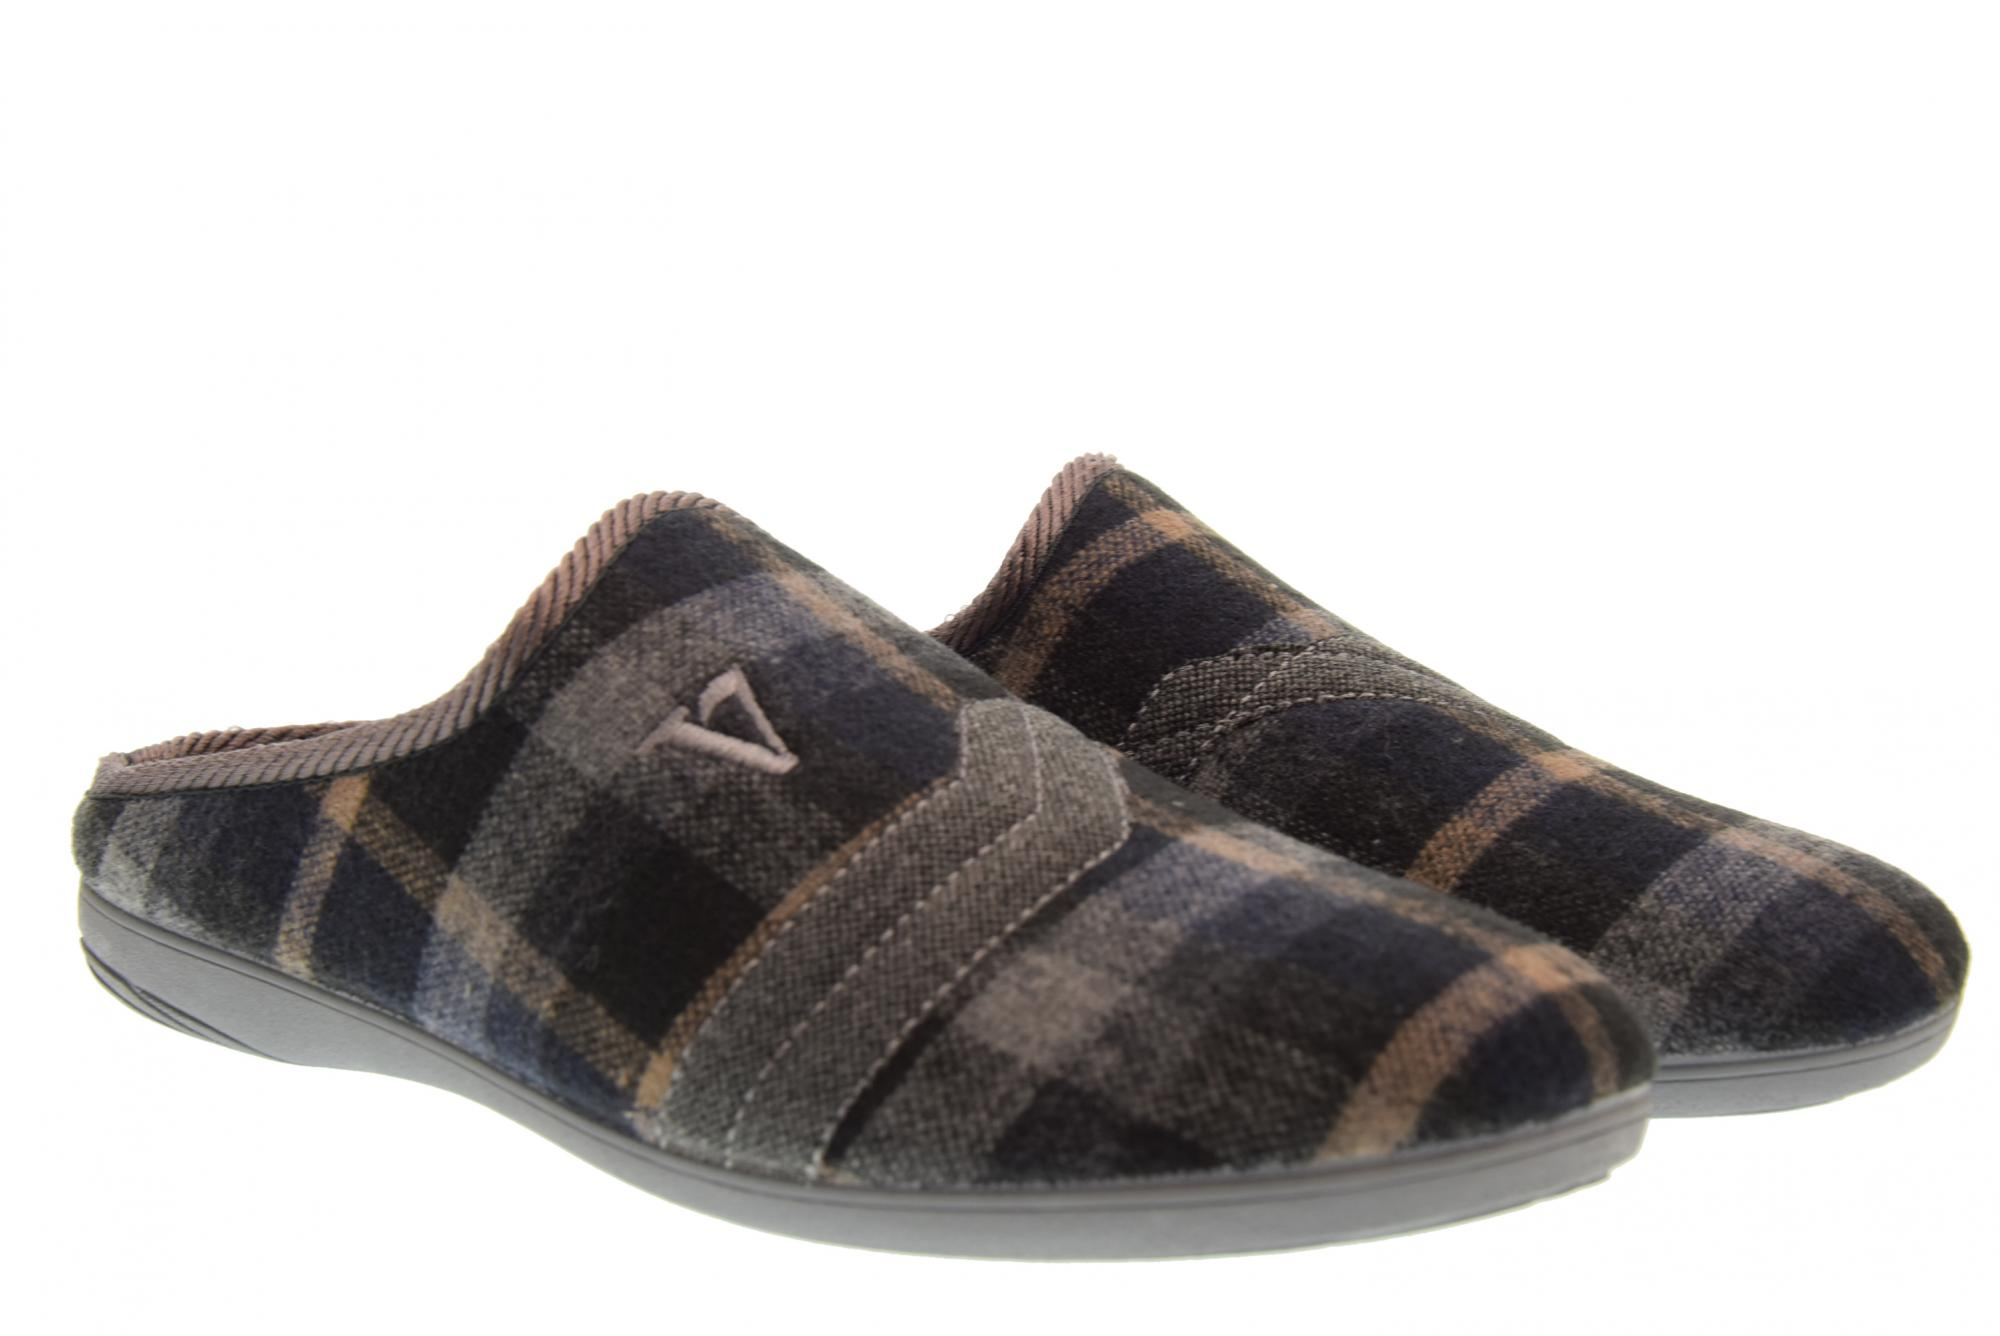 Valleverde A18f Chaussures Homme Chaussons 26811 Gris Durable Modeling Slippers